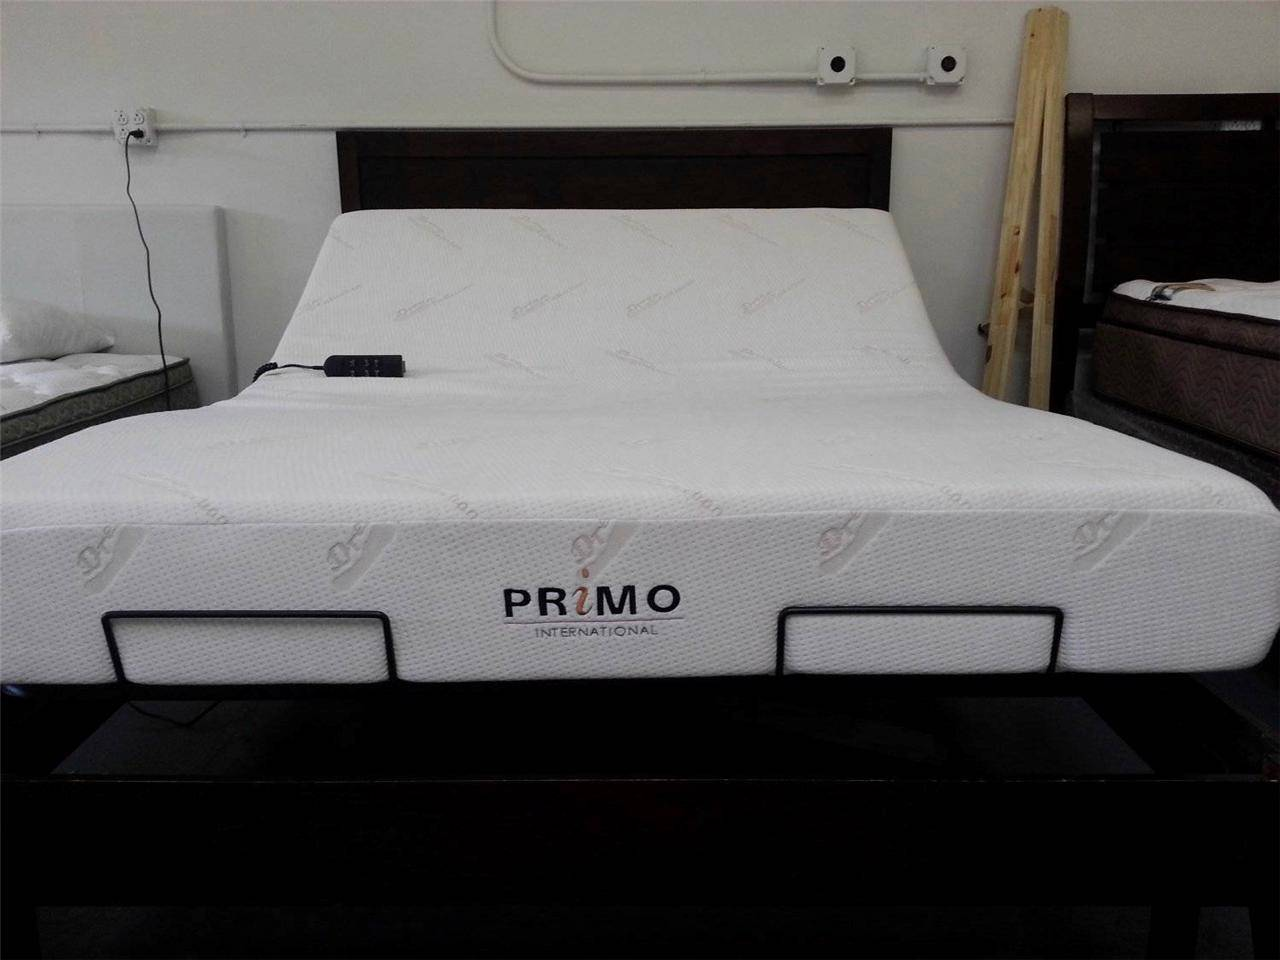 Primo adjustable beds memory foam mattress adjustable electric bed queen size Queen bed and mattress